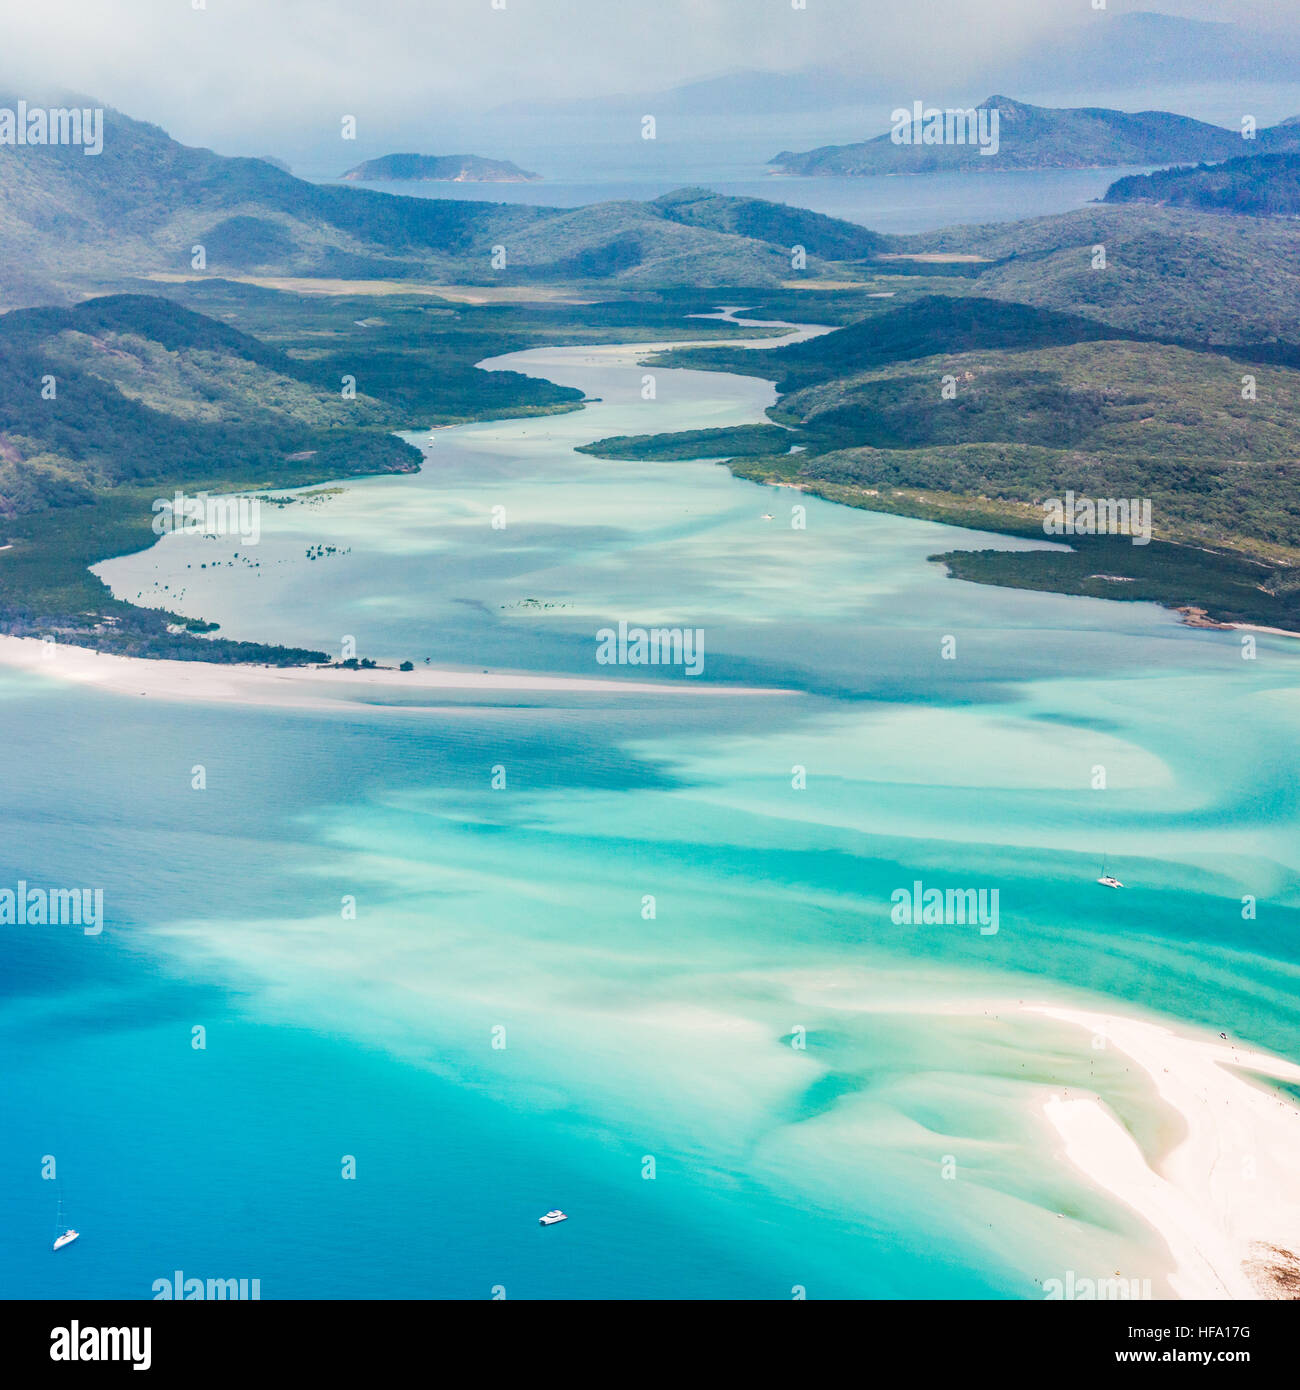 Whitsunday Islands, Whitehaven beach, Queensland, Australia - Stock Image